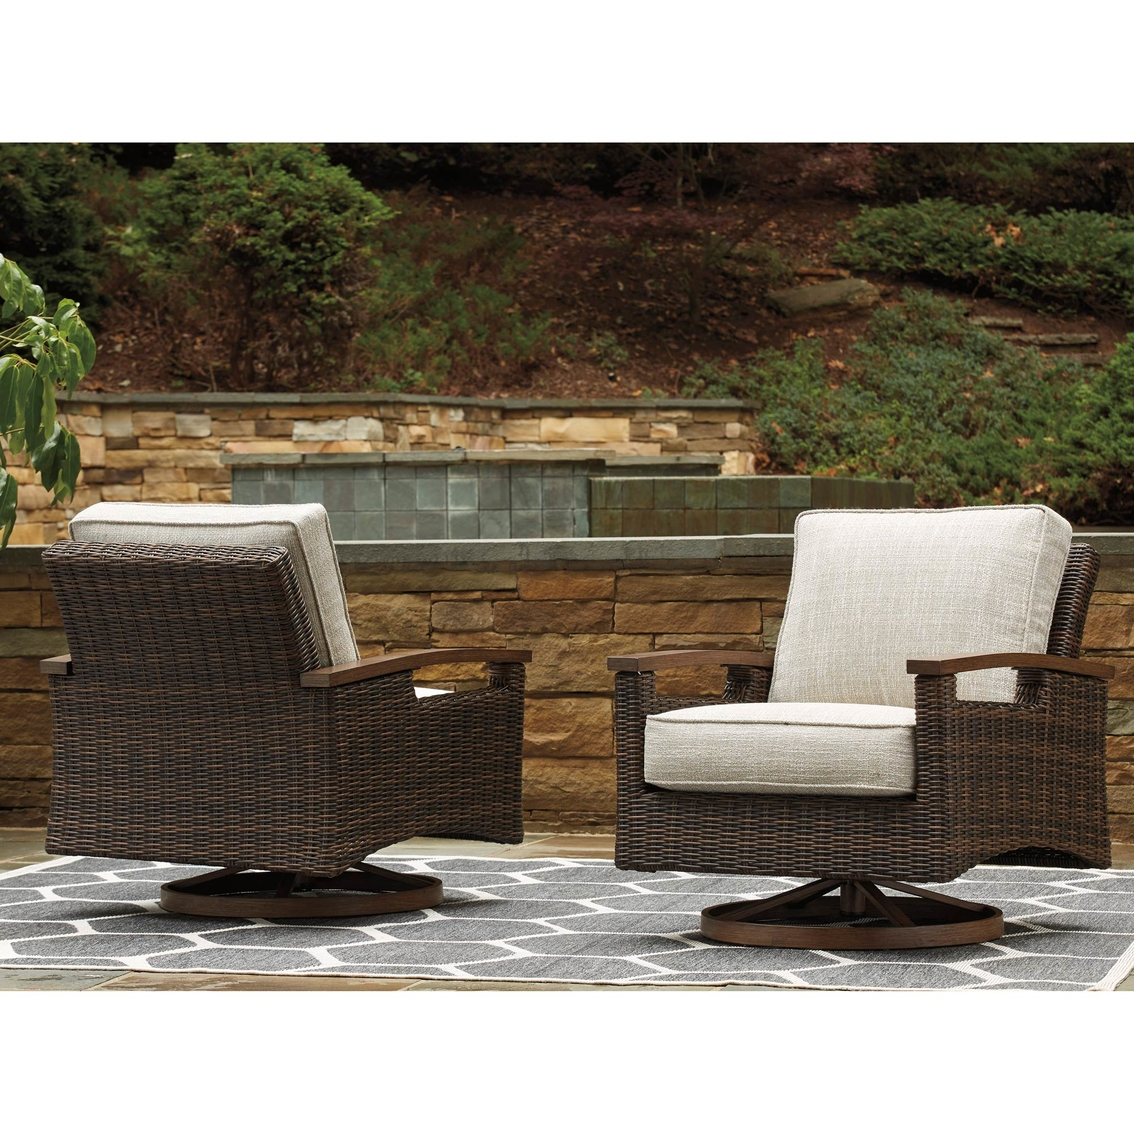 Remarkable Ashley Paradise Trail Swivel Lounge Chair Set Of 2 Patio Gmtry Best Dining Table And Chair Ideas Images Gmtryco